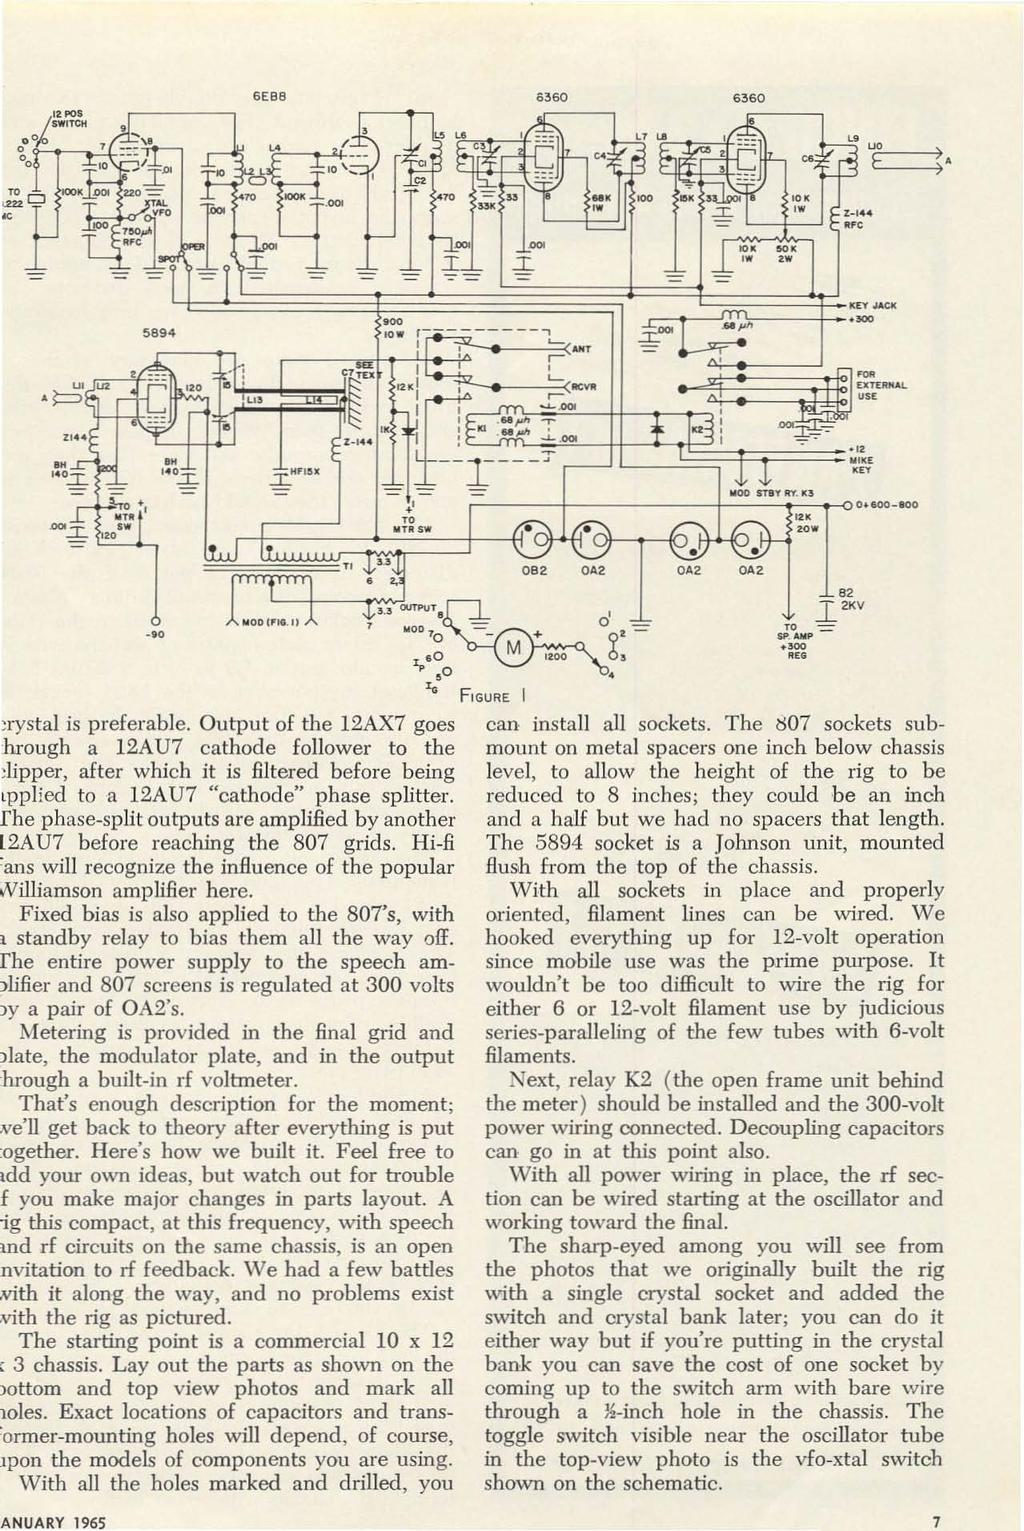 Construction Antennas Technical Beginner Vii F Transistors Spdt Switch Wiring A Fancy Challenge Anuary 1965 7 Fpc1 Swtcol 00 1j